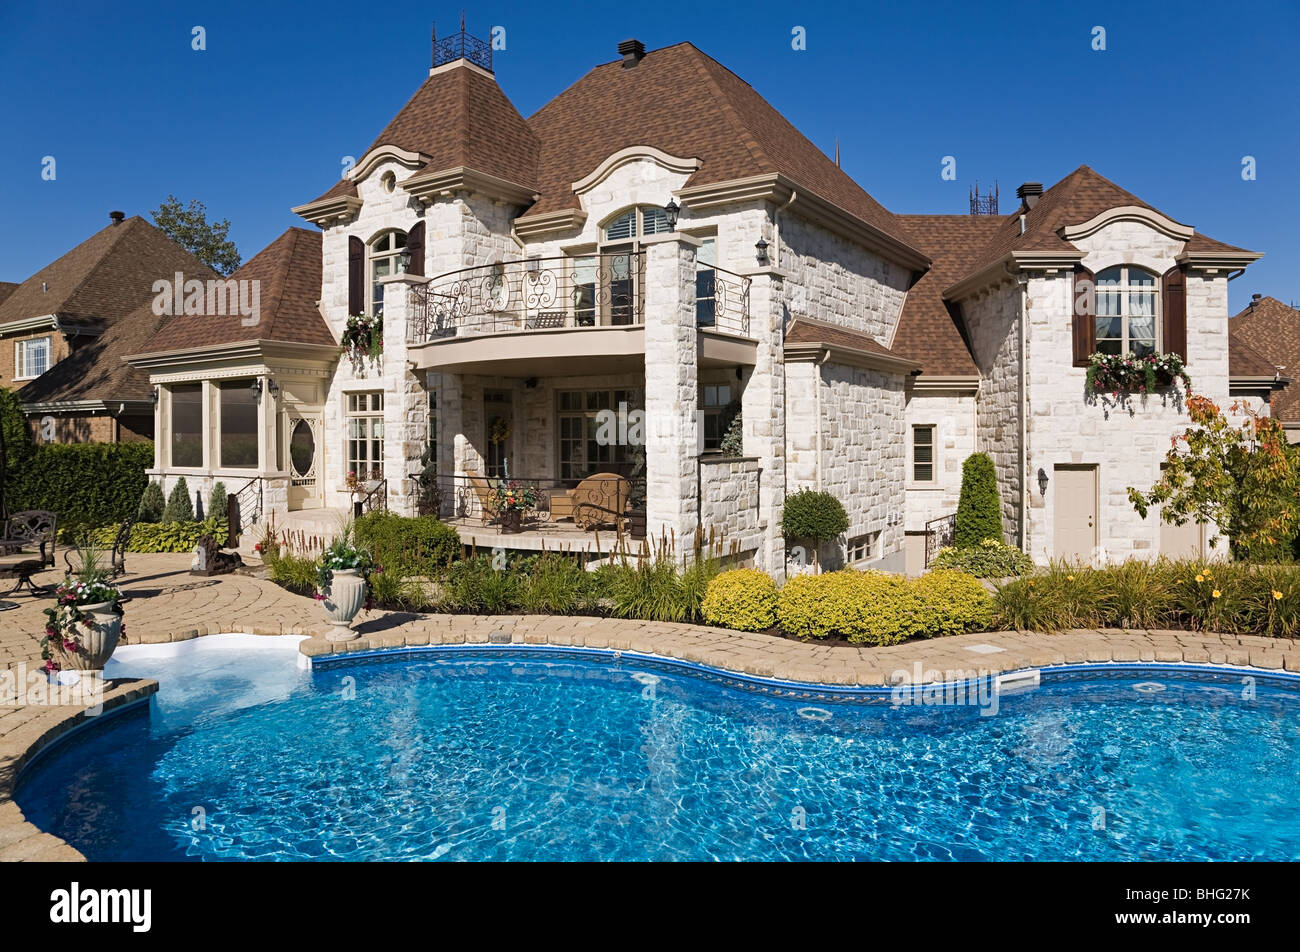 Large house with swimming pool - Stock Image